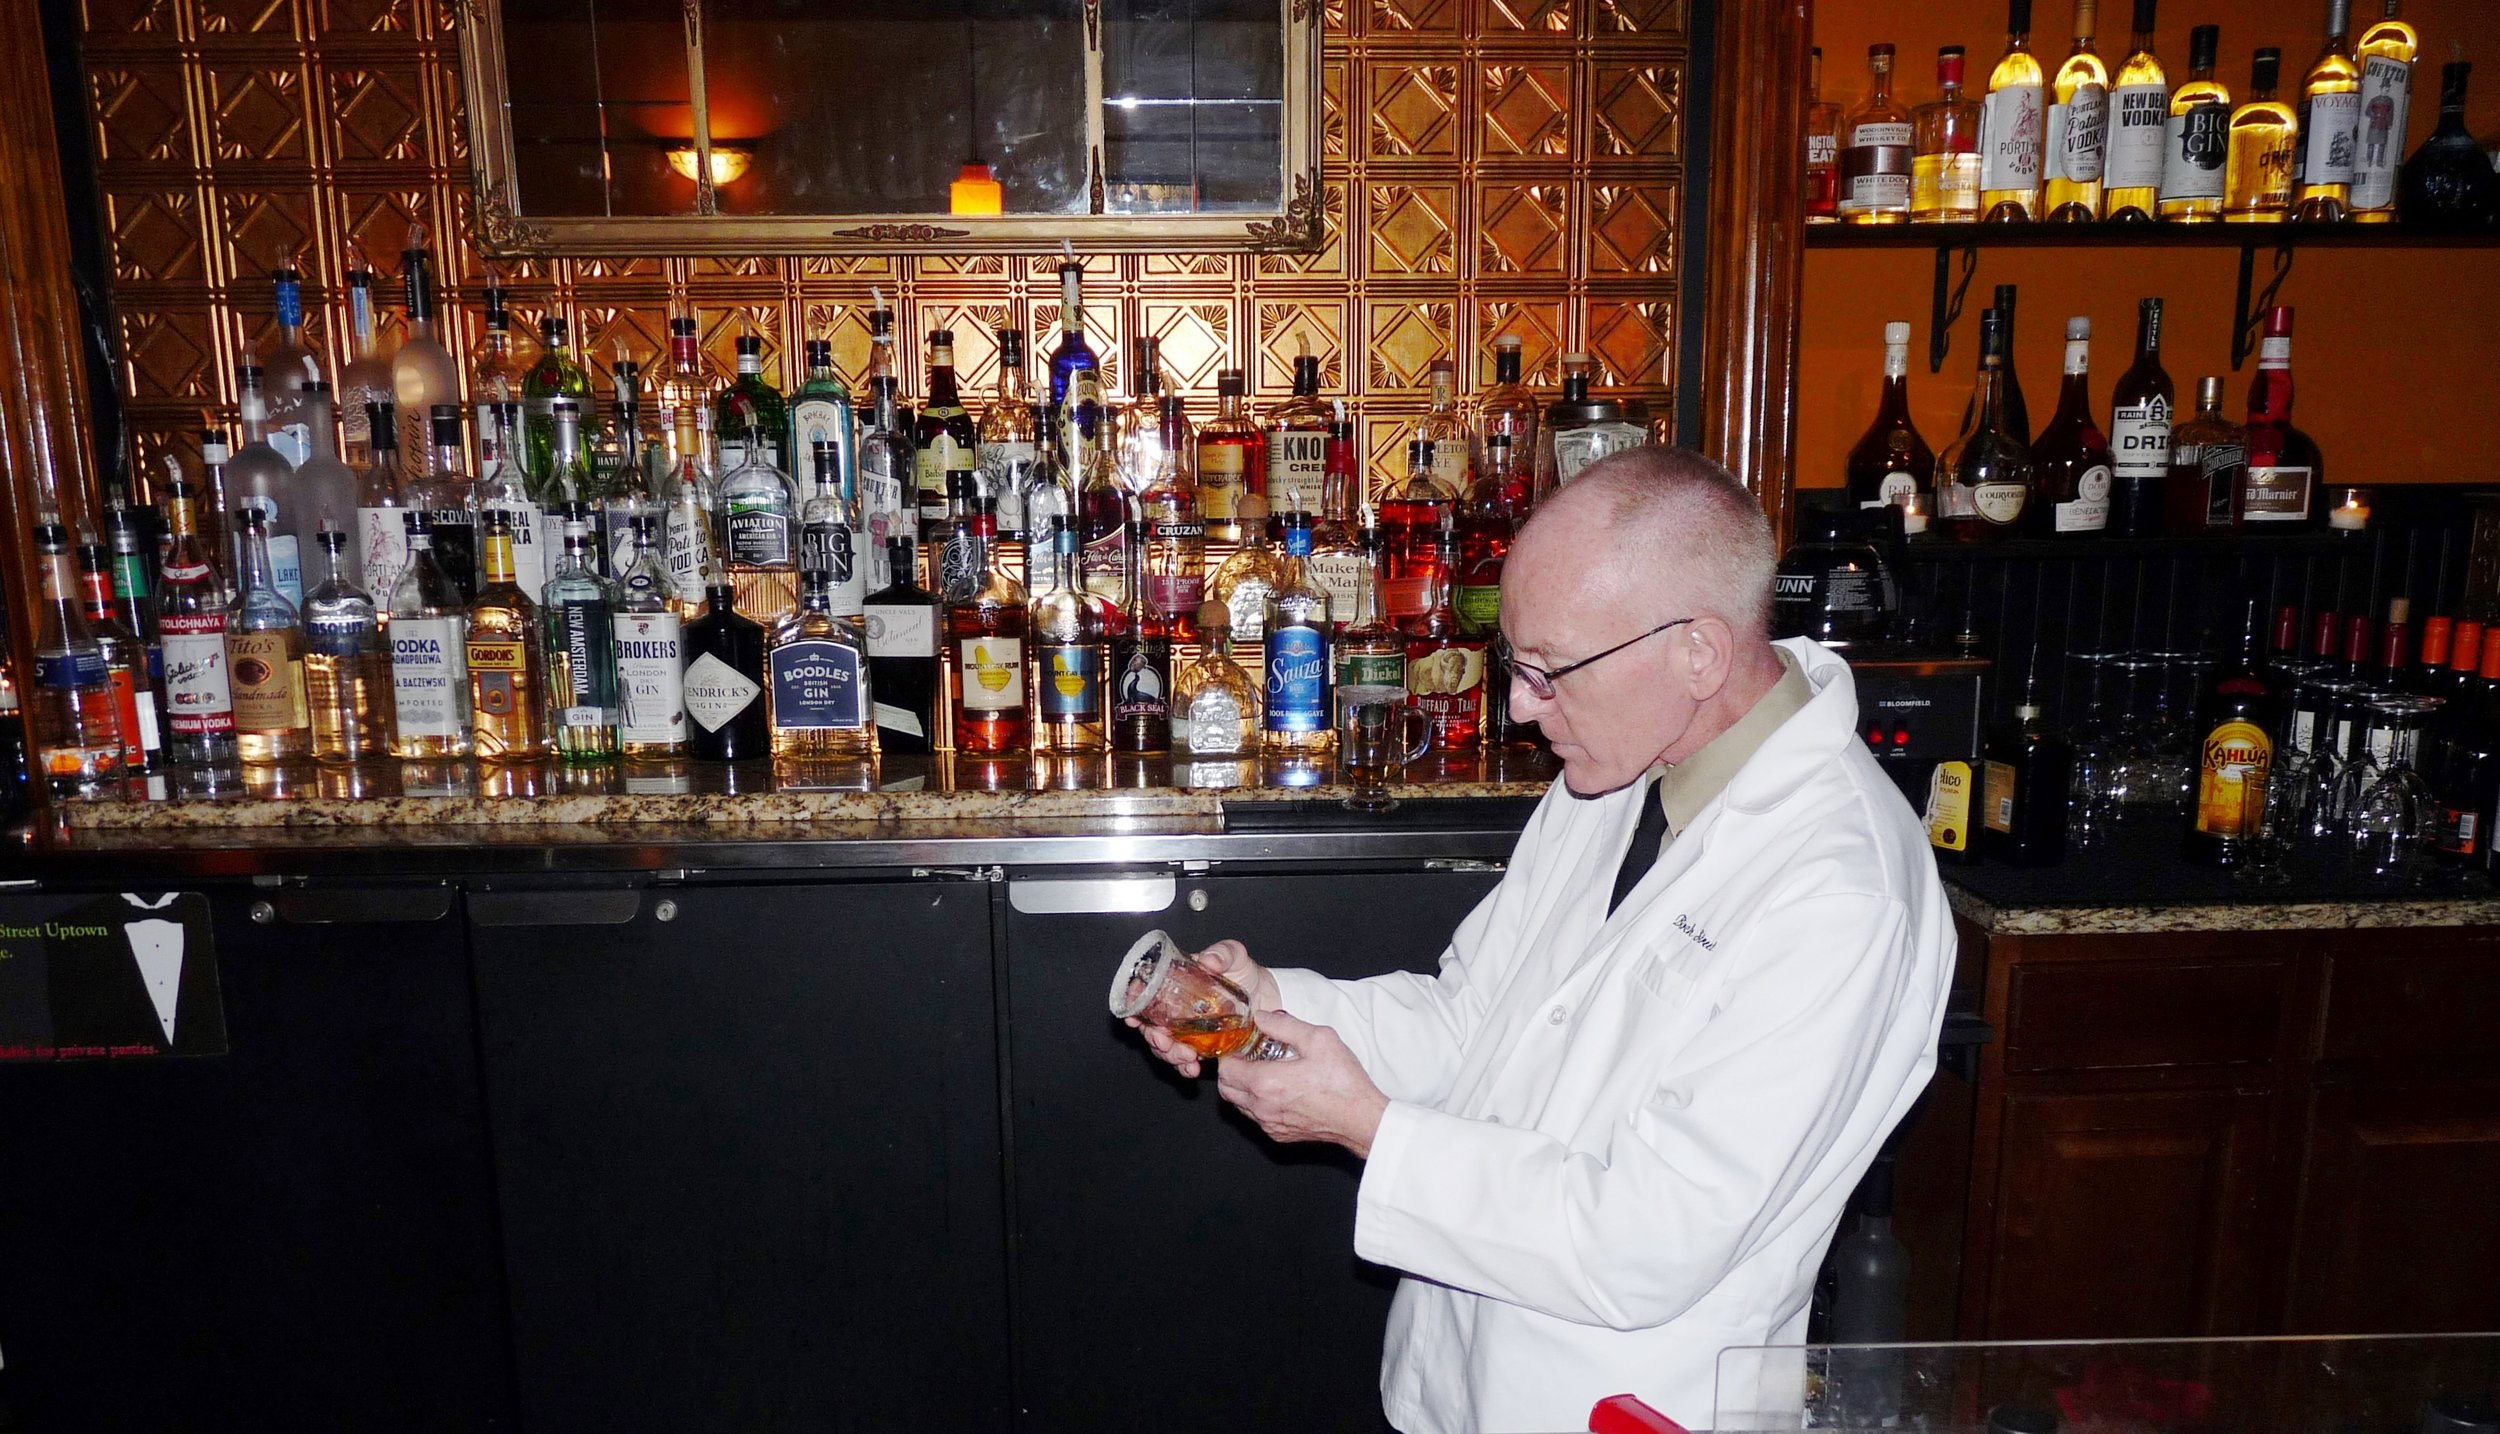 Dennis of Birch Street Uptown Lounge surveying the process thoughtfully as he caramelizes a sugar rim.